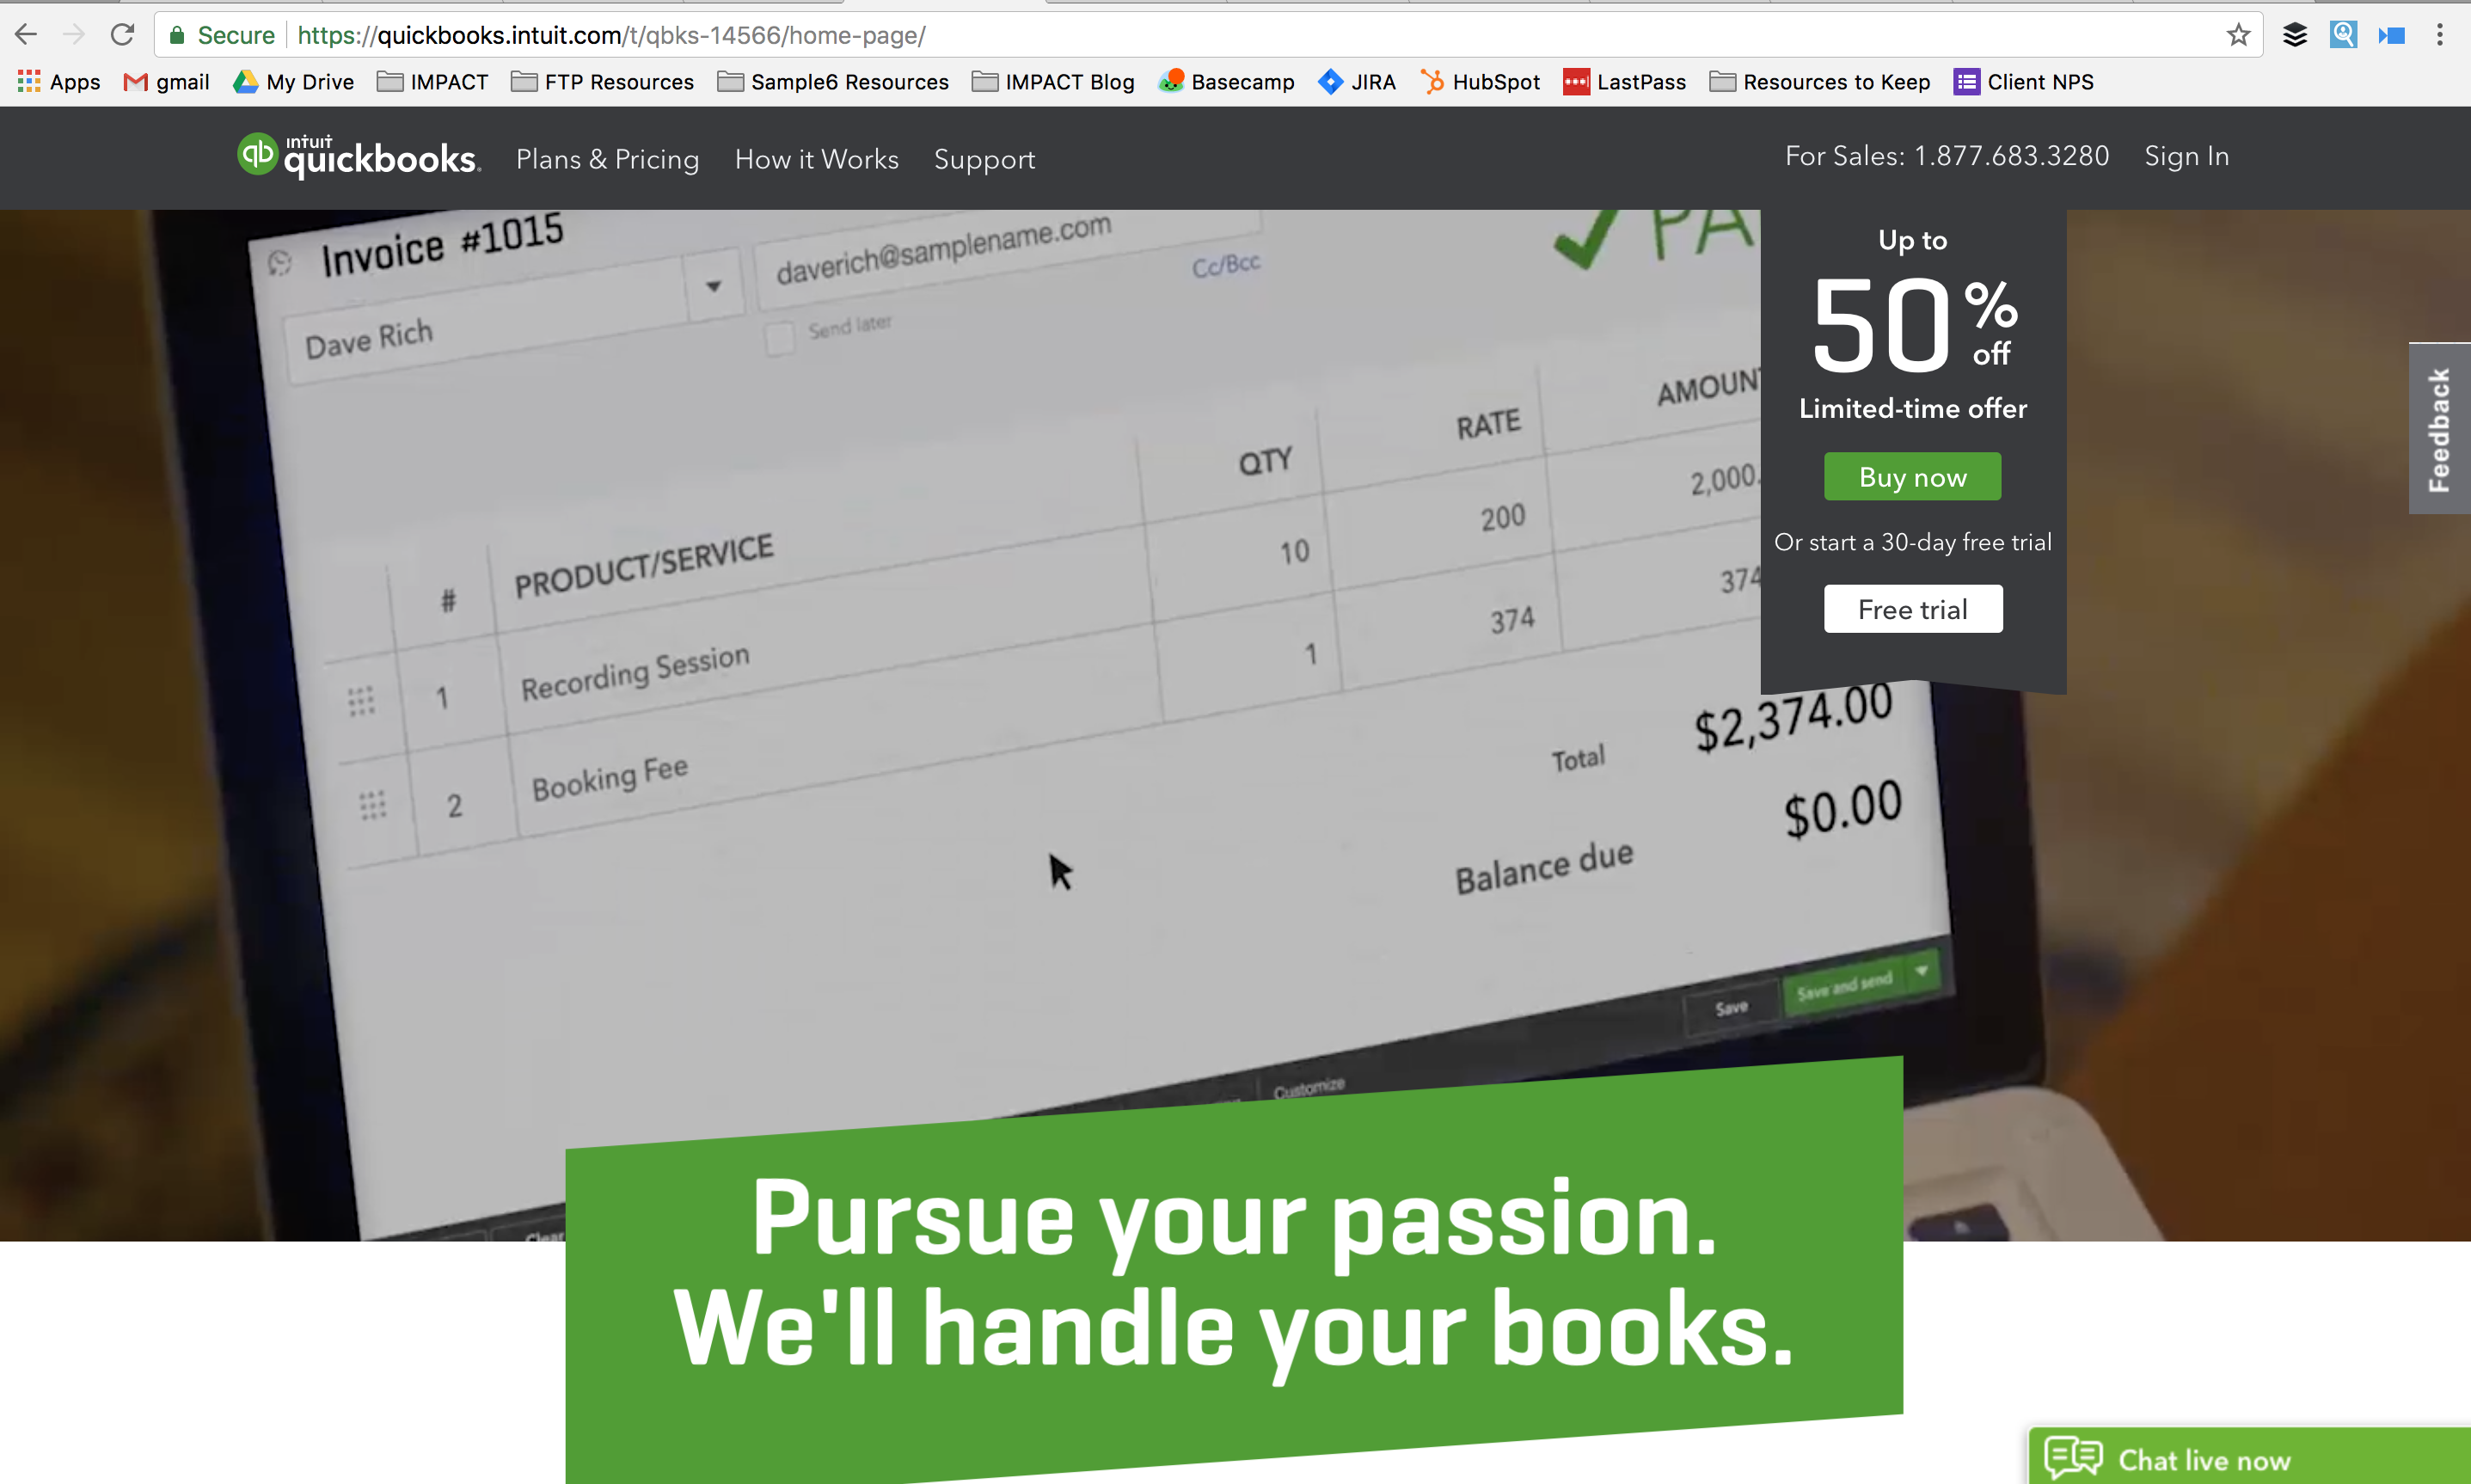 quickbooks-homepage.png